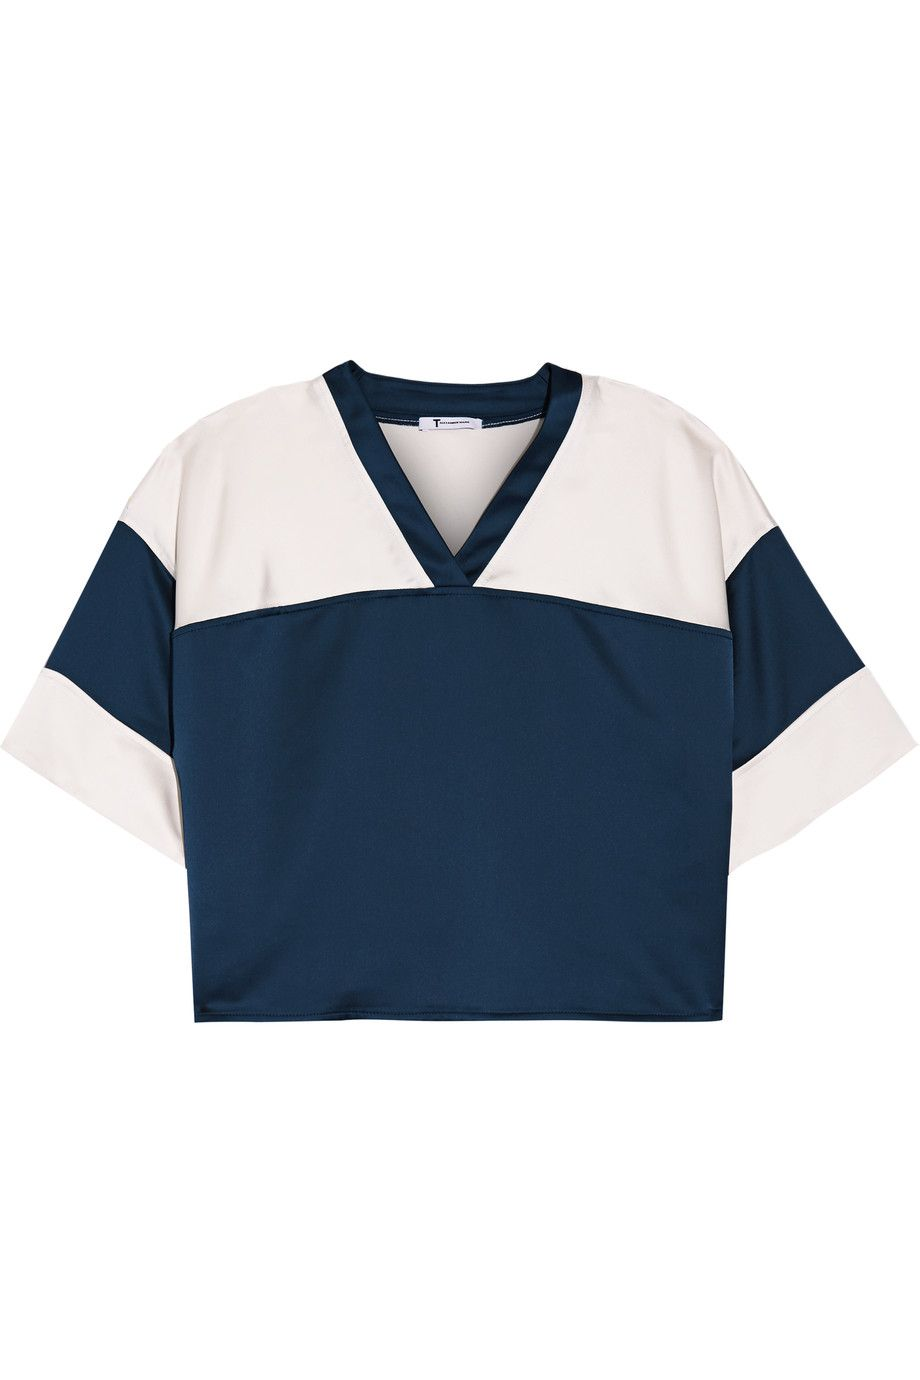 T BY ALEXANDER WANG Cropped Two-Tone Satin Top. #tbyalexanderwang #cloth #top